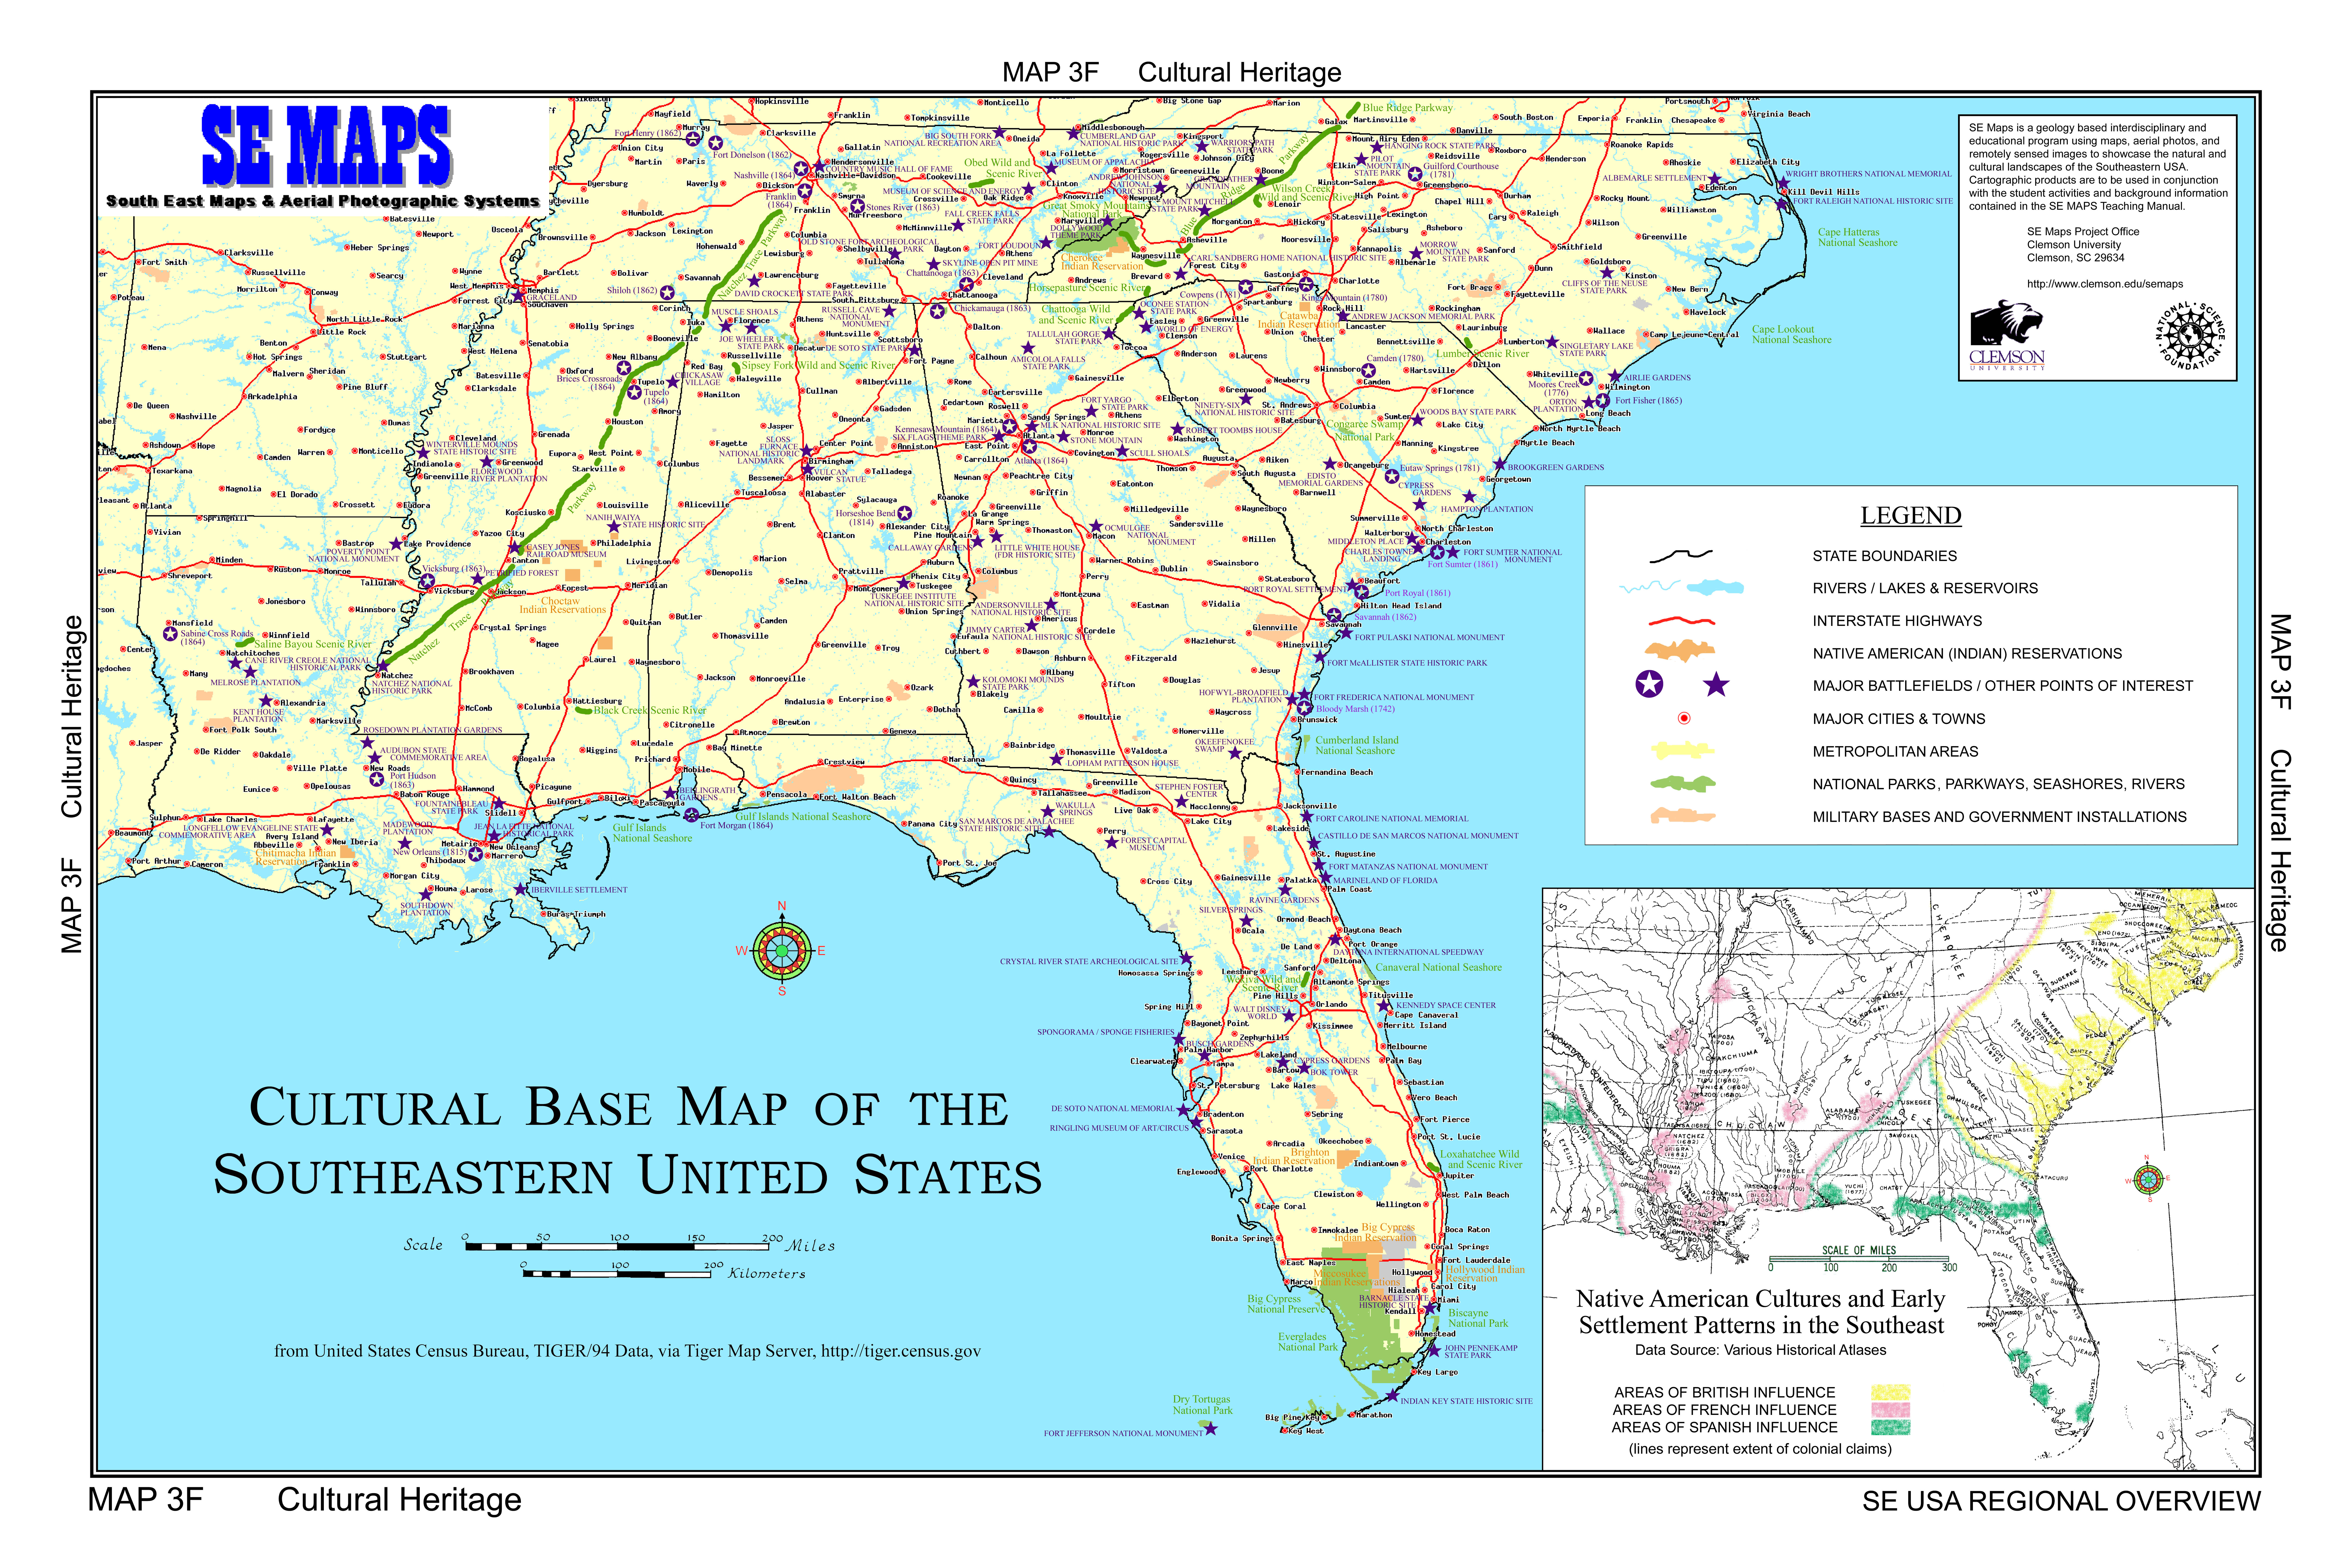 Southern United States Interstate Map My Blog - Map of southeast us